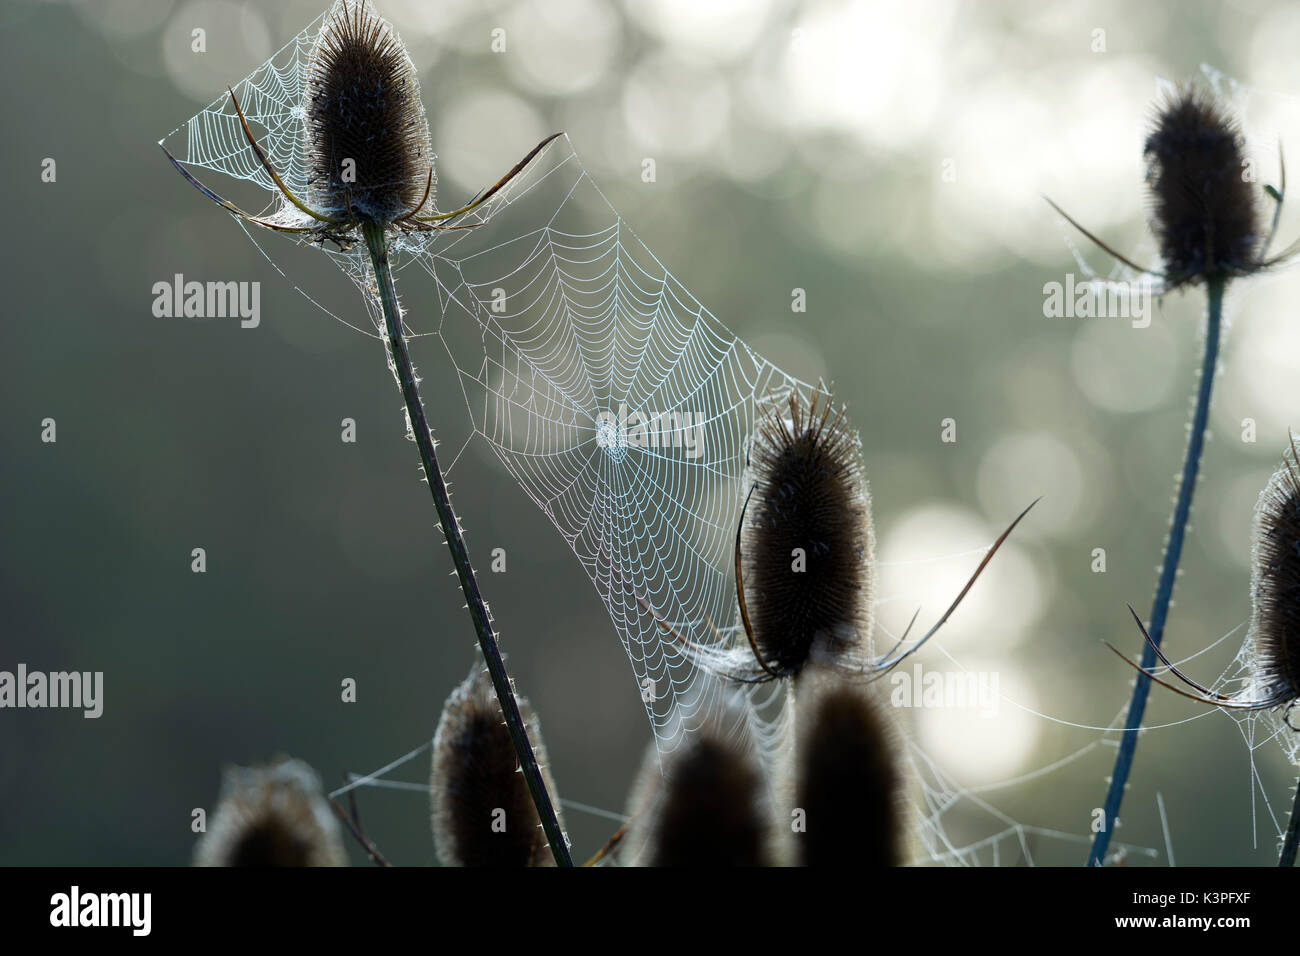 Teasels with morning dew on spiders webs, Kingsbury Water Park, Warwickshire, UK - Stock Image